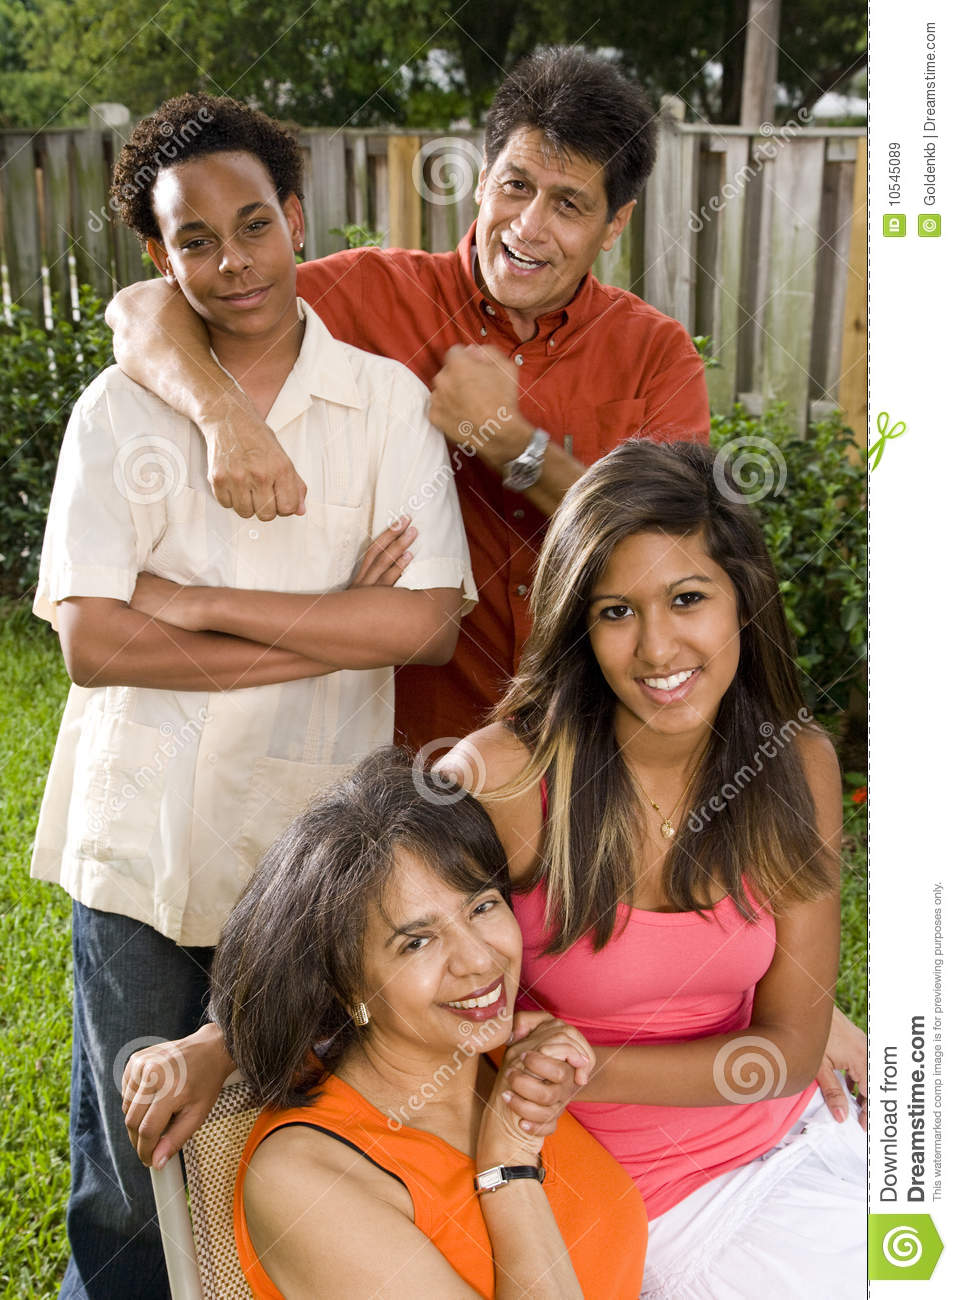 Familia interracial